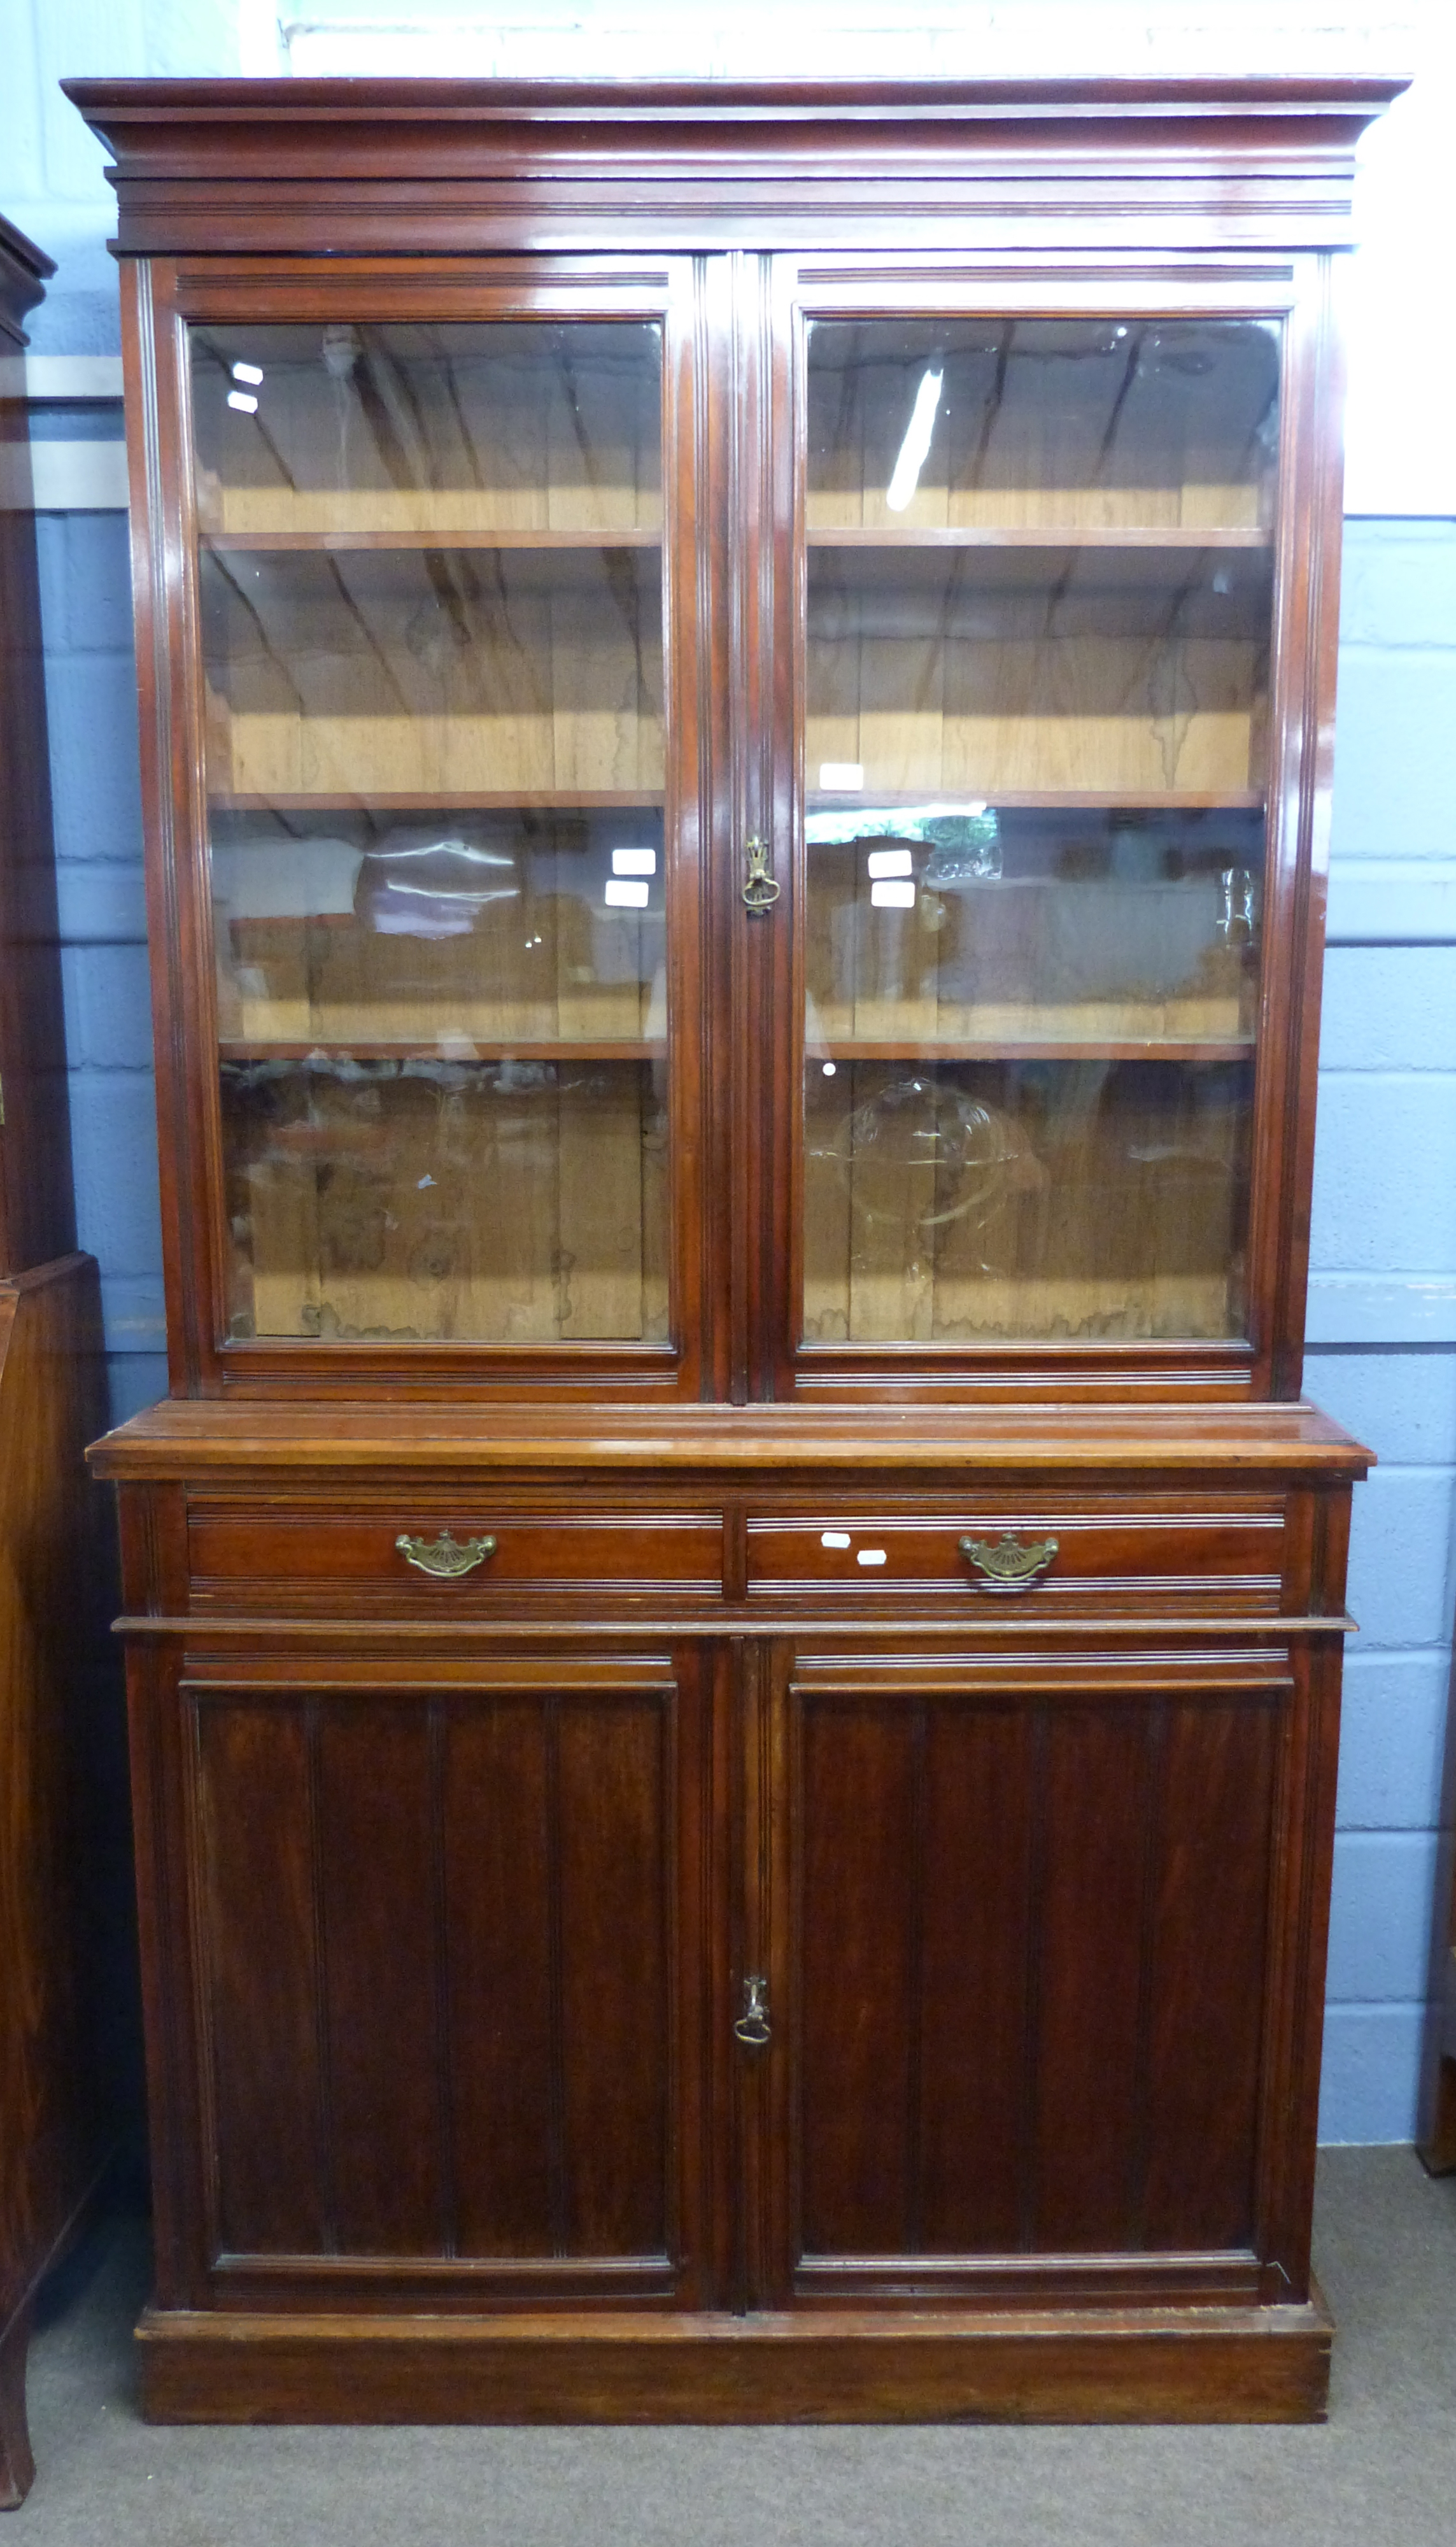 Full height mahogany side cabinet with glazed bookcase raised over double cupboard, width approx